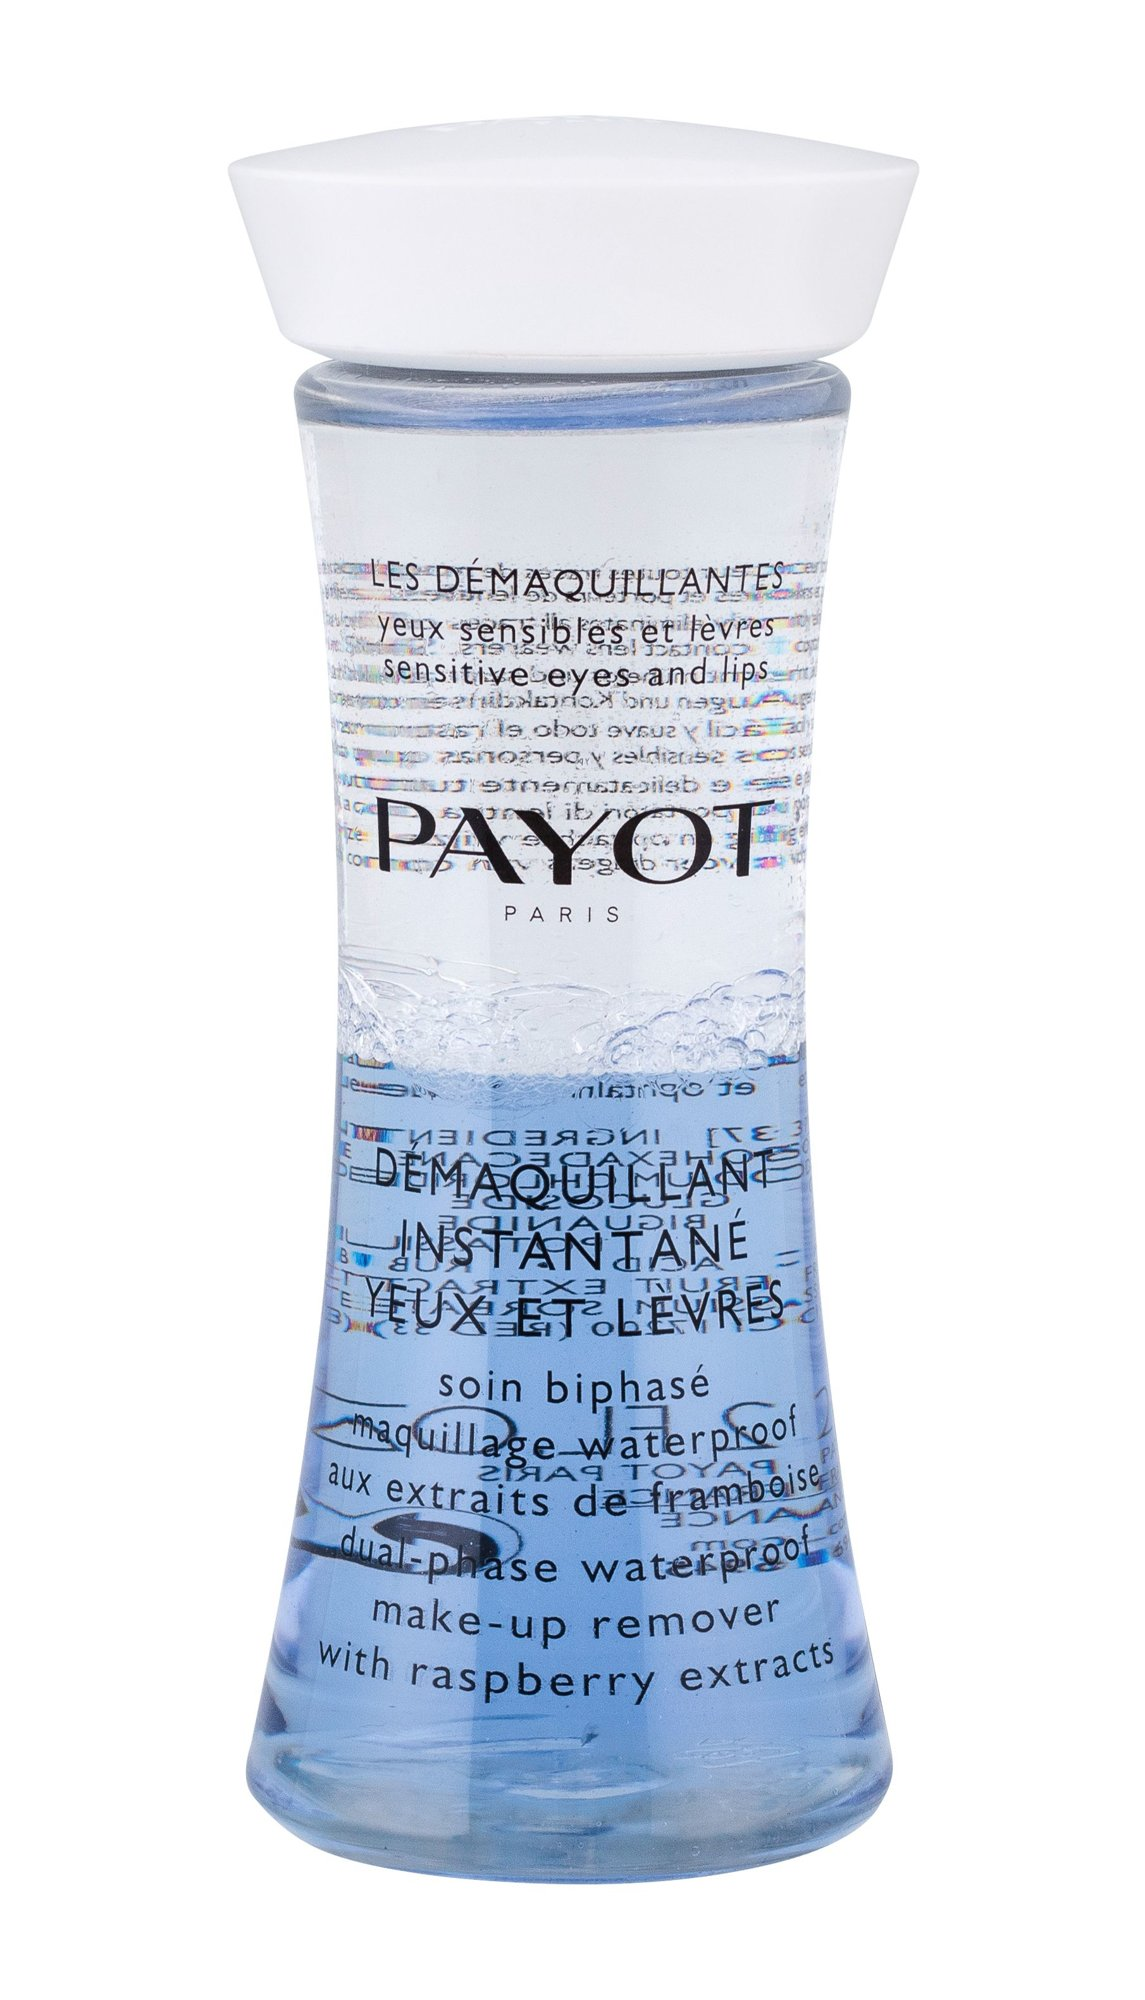 PAYOT Les Démaquillantes Eye Makeup Remover 125ml